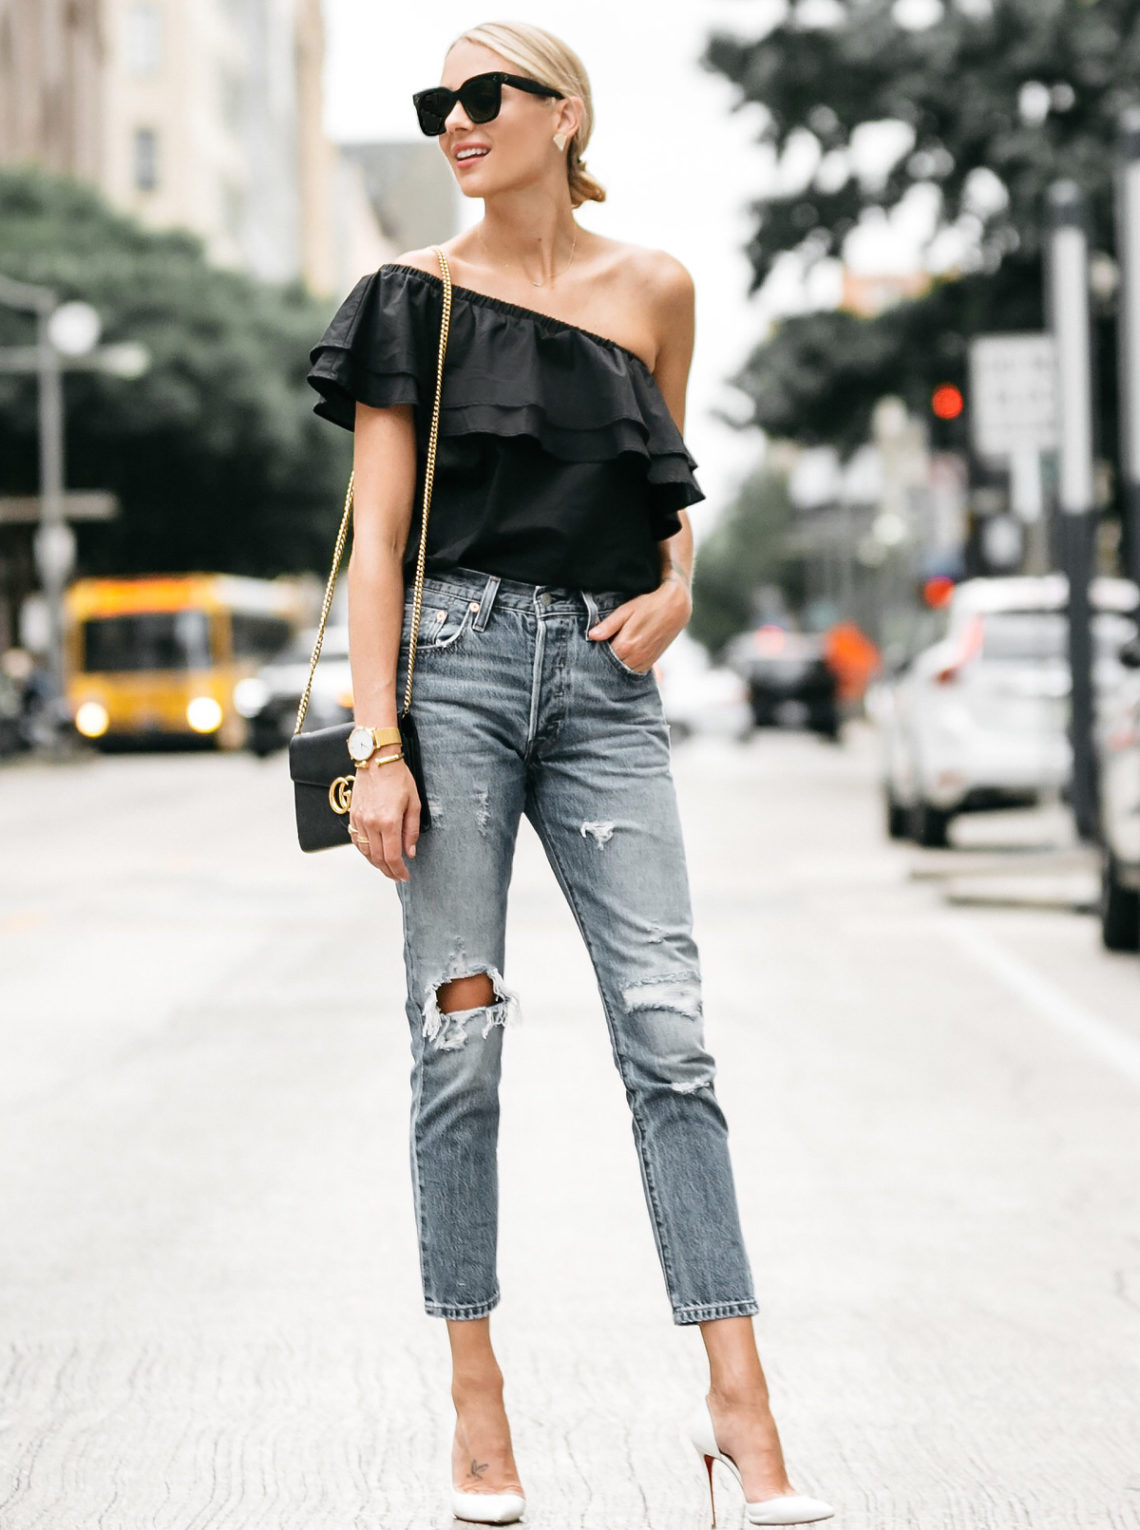 40e969fa6bc Blonde woman wearing nordstrom black one shoulder ruffle top levis distressed  jeans christian louboutin white pumps